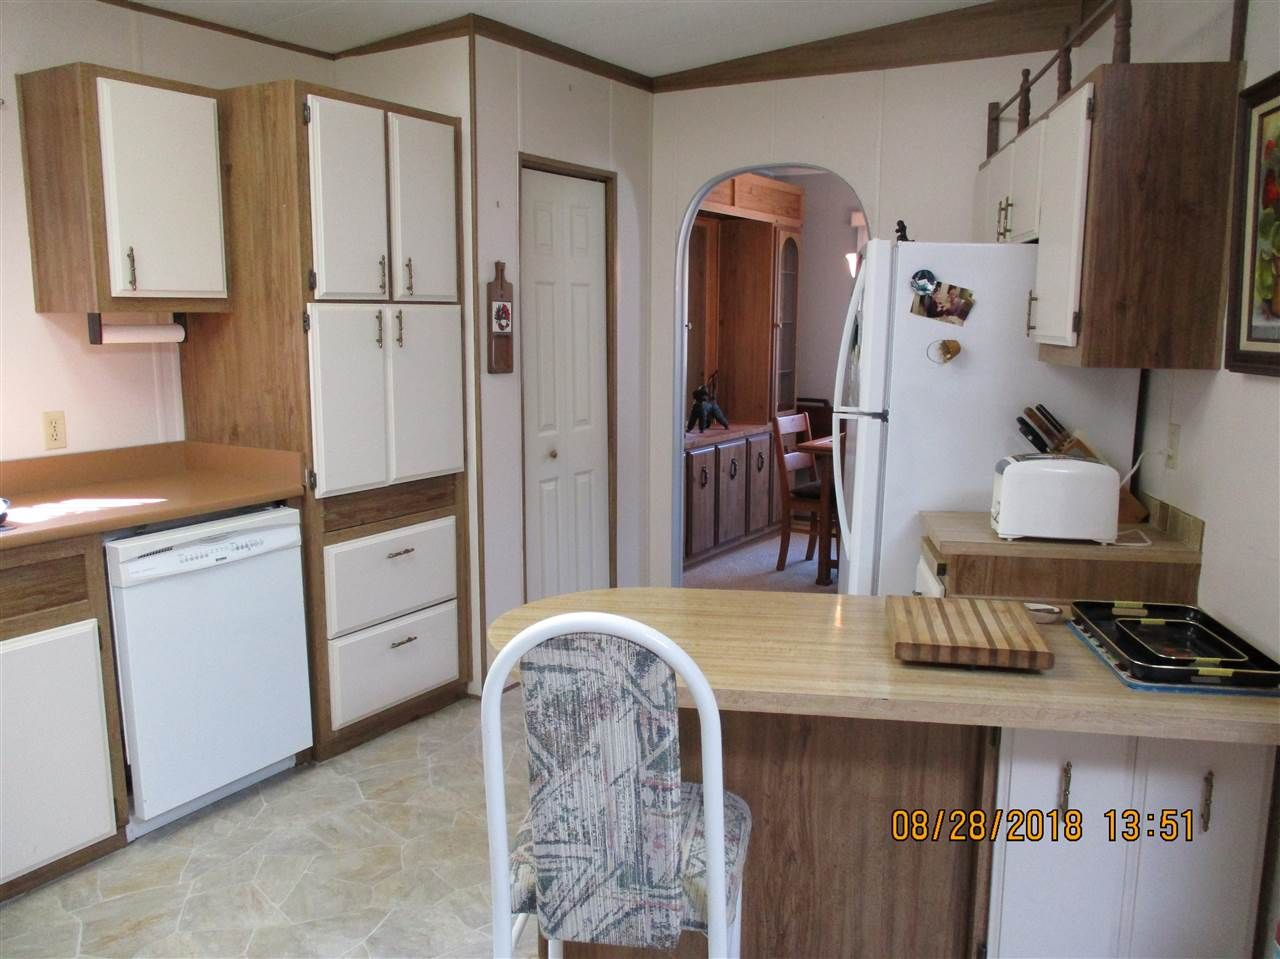 """Photo 9: Photos: 57 2305 200 Street in Langley: Brookswood Langley Manufactured Home for sale in """"CEDAR LANE"""" : MLS®# R2357125"""